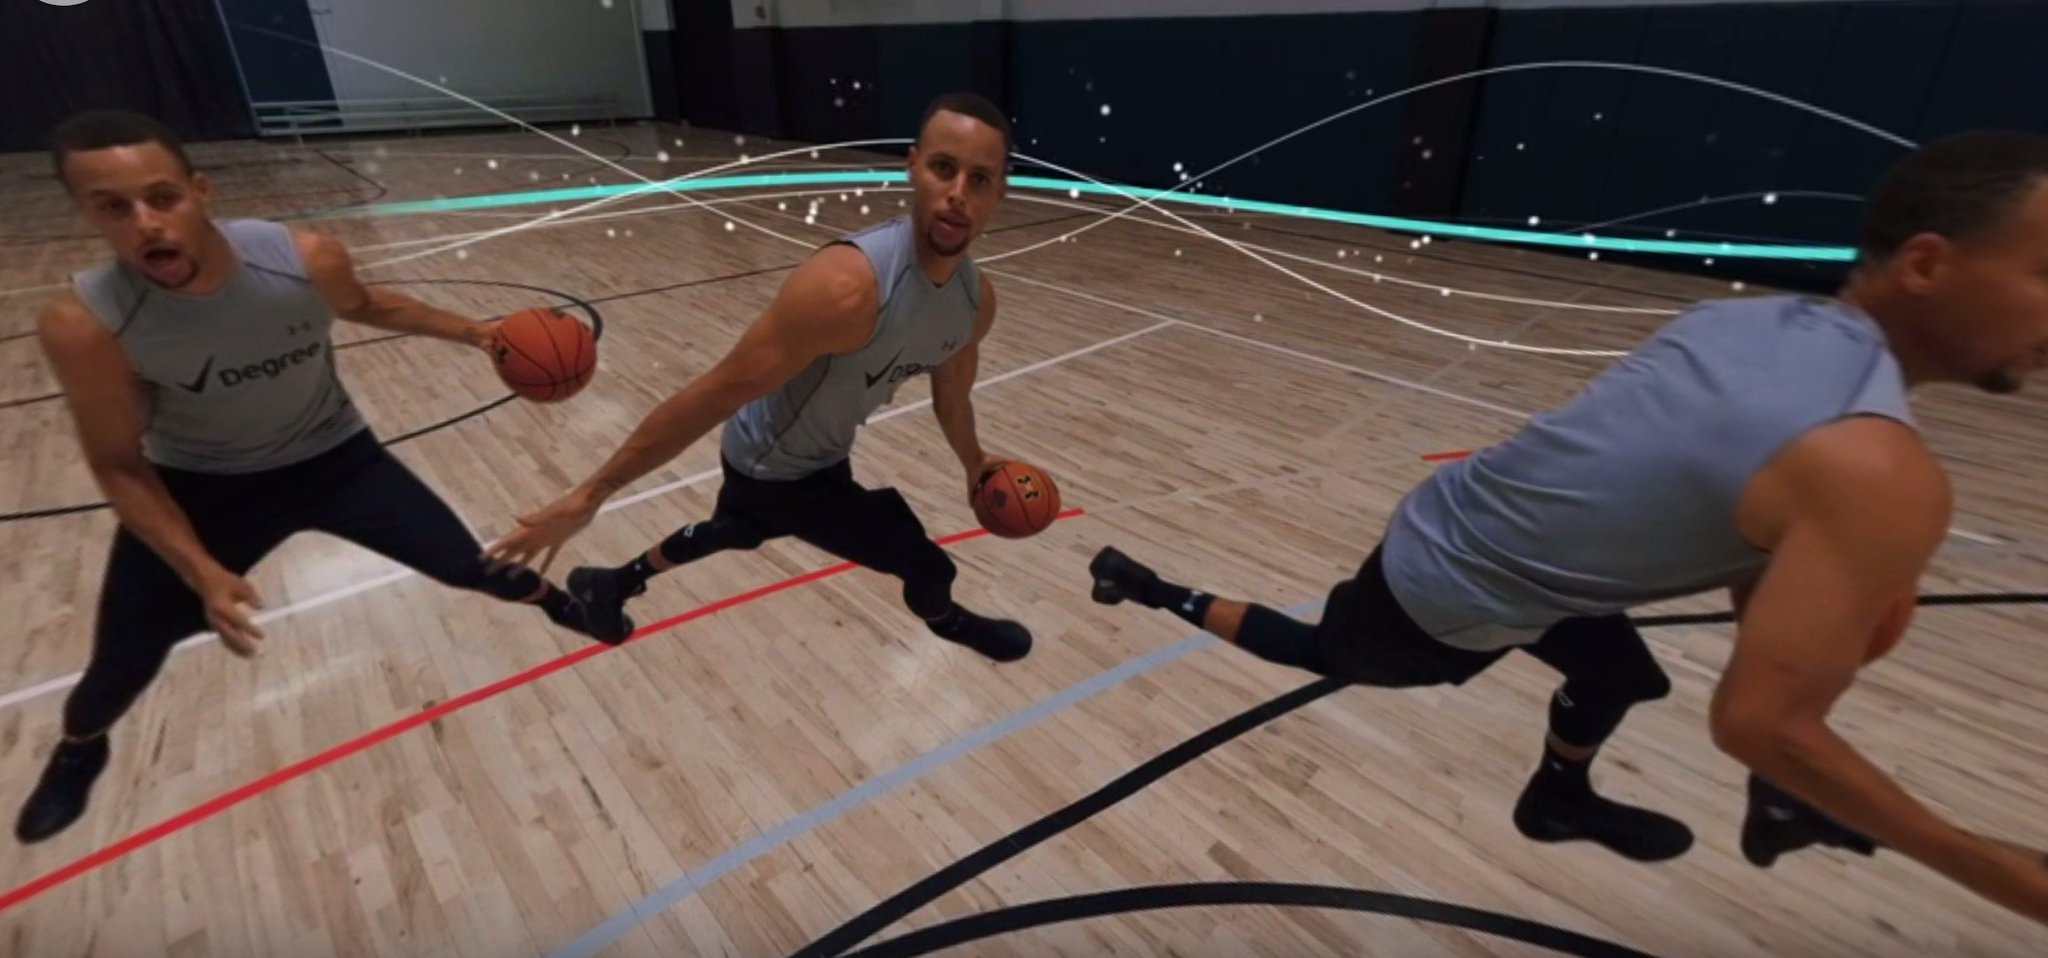 Think you can keep up with Curry? Find out in this 360° video. #RedefineWhatsPossible https://t.co/9zFIyY7toE